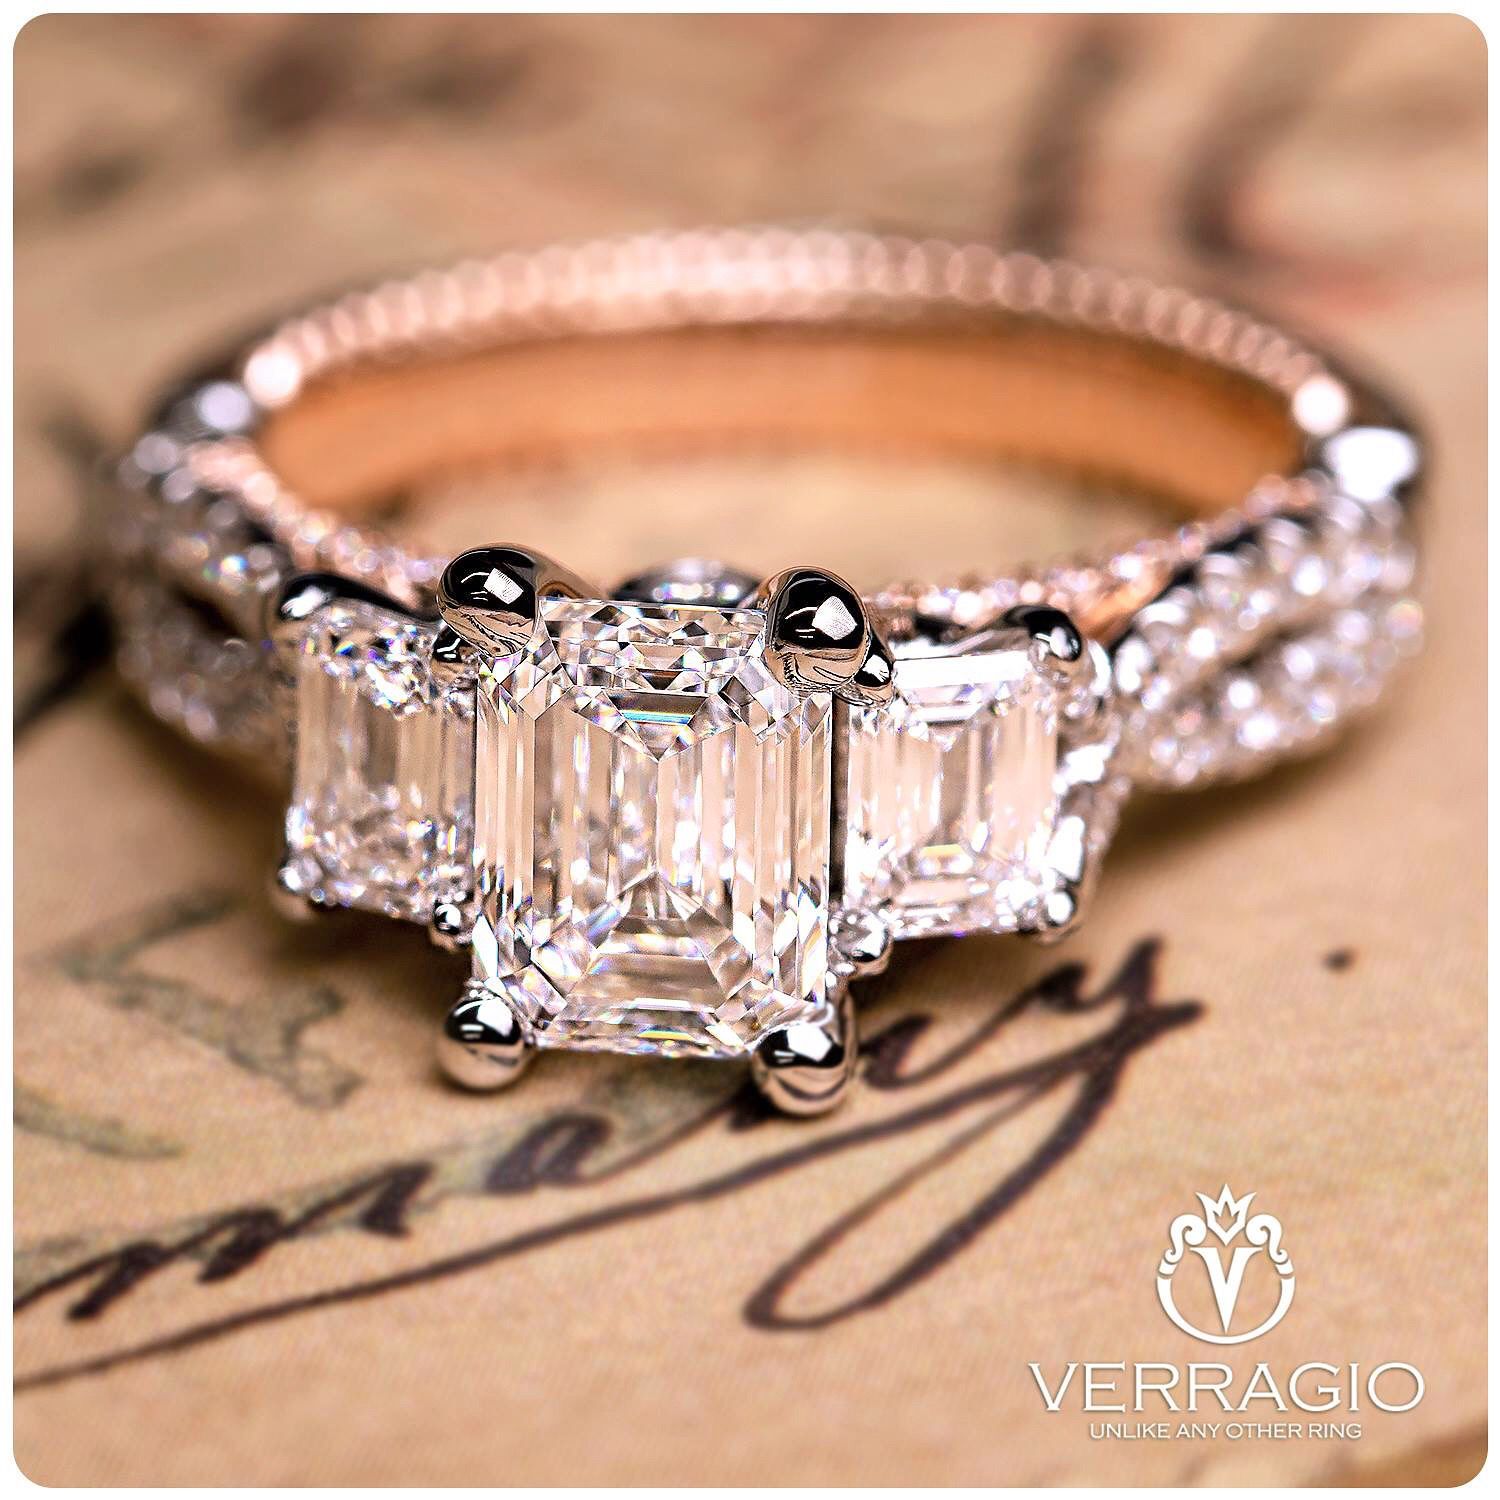 Pin On Verragio Engagement Rings By Emerald Lady Jewelry Destin Fl